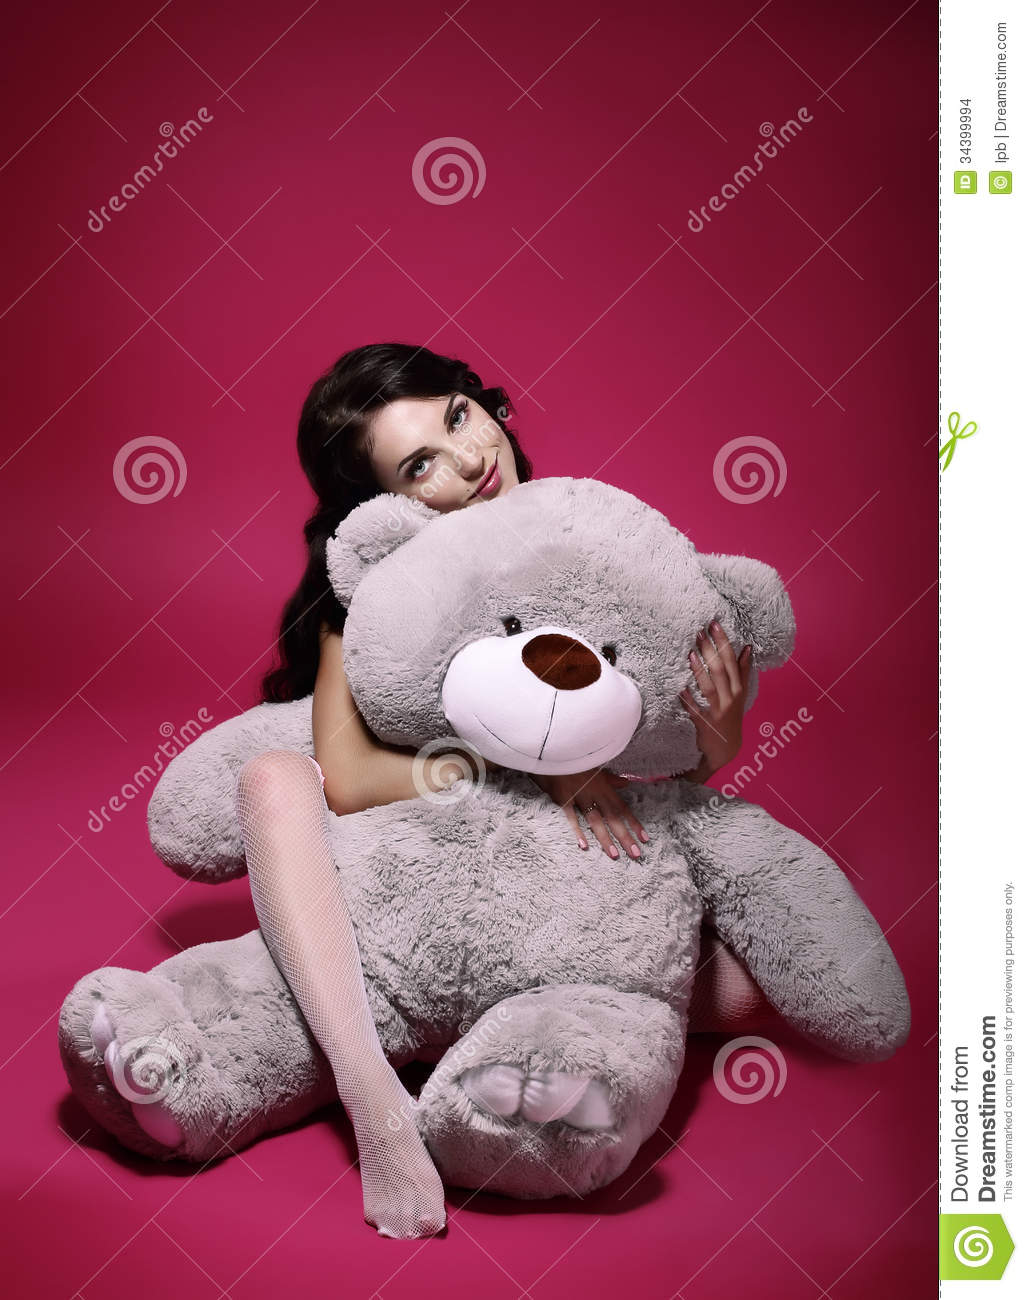 Dreaminess. Sentimental Girl with Soft Toy - Gray Bruin in Embrace